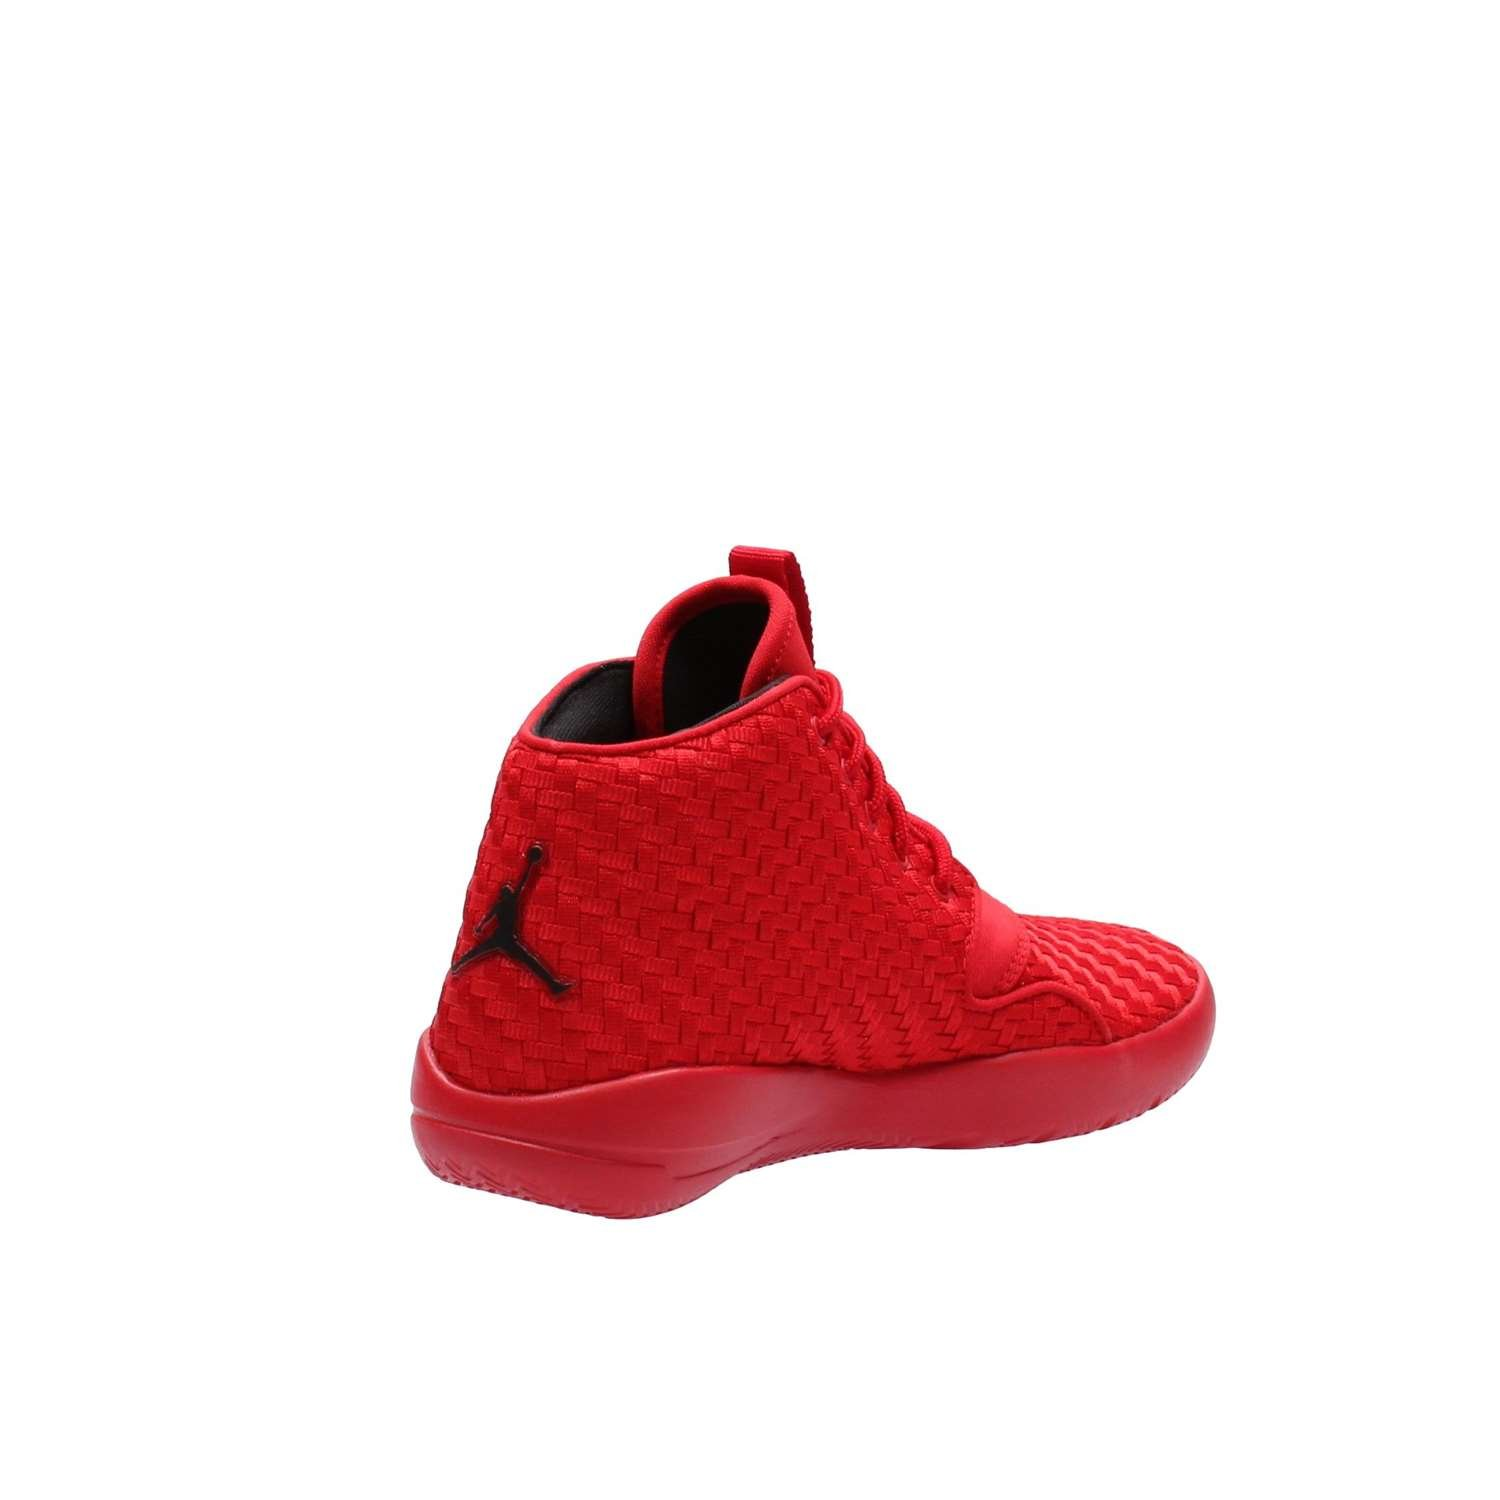 Amazon.com | Nike 881461-601 : Jordan Kids Jordan Eclipse BG Running Shoe Red (6 M US Big Kid, Gym Red/Black) | Running